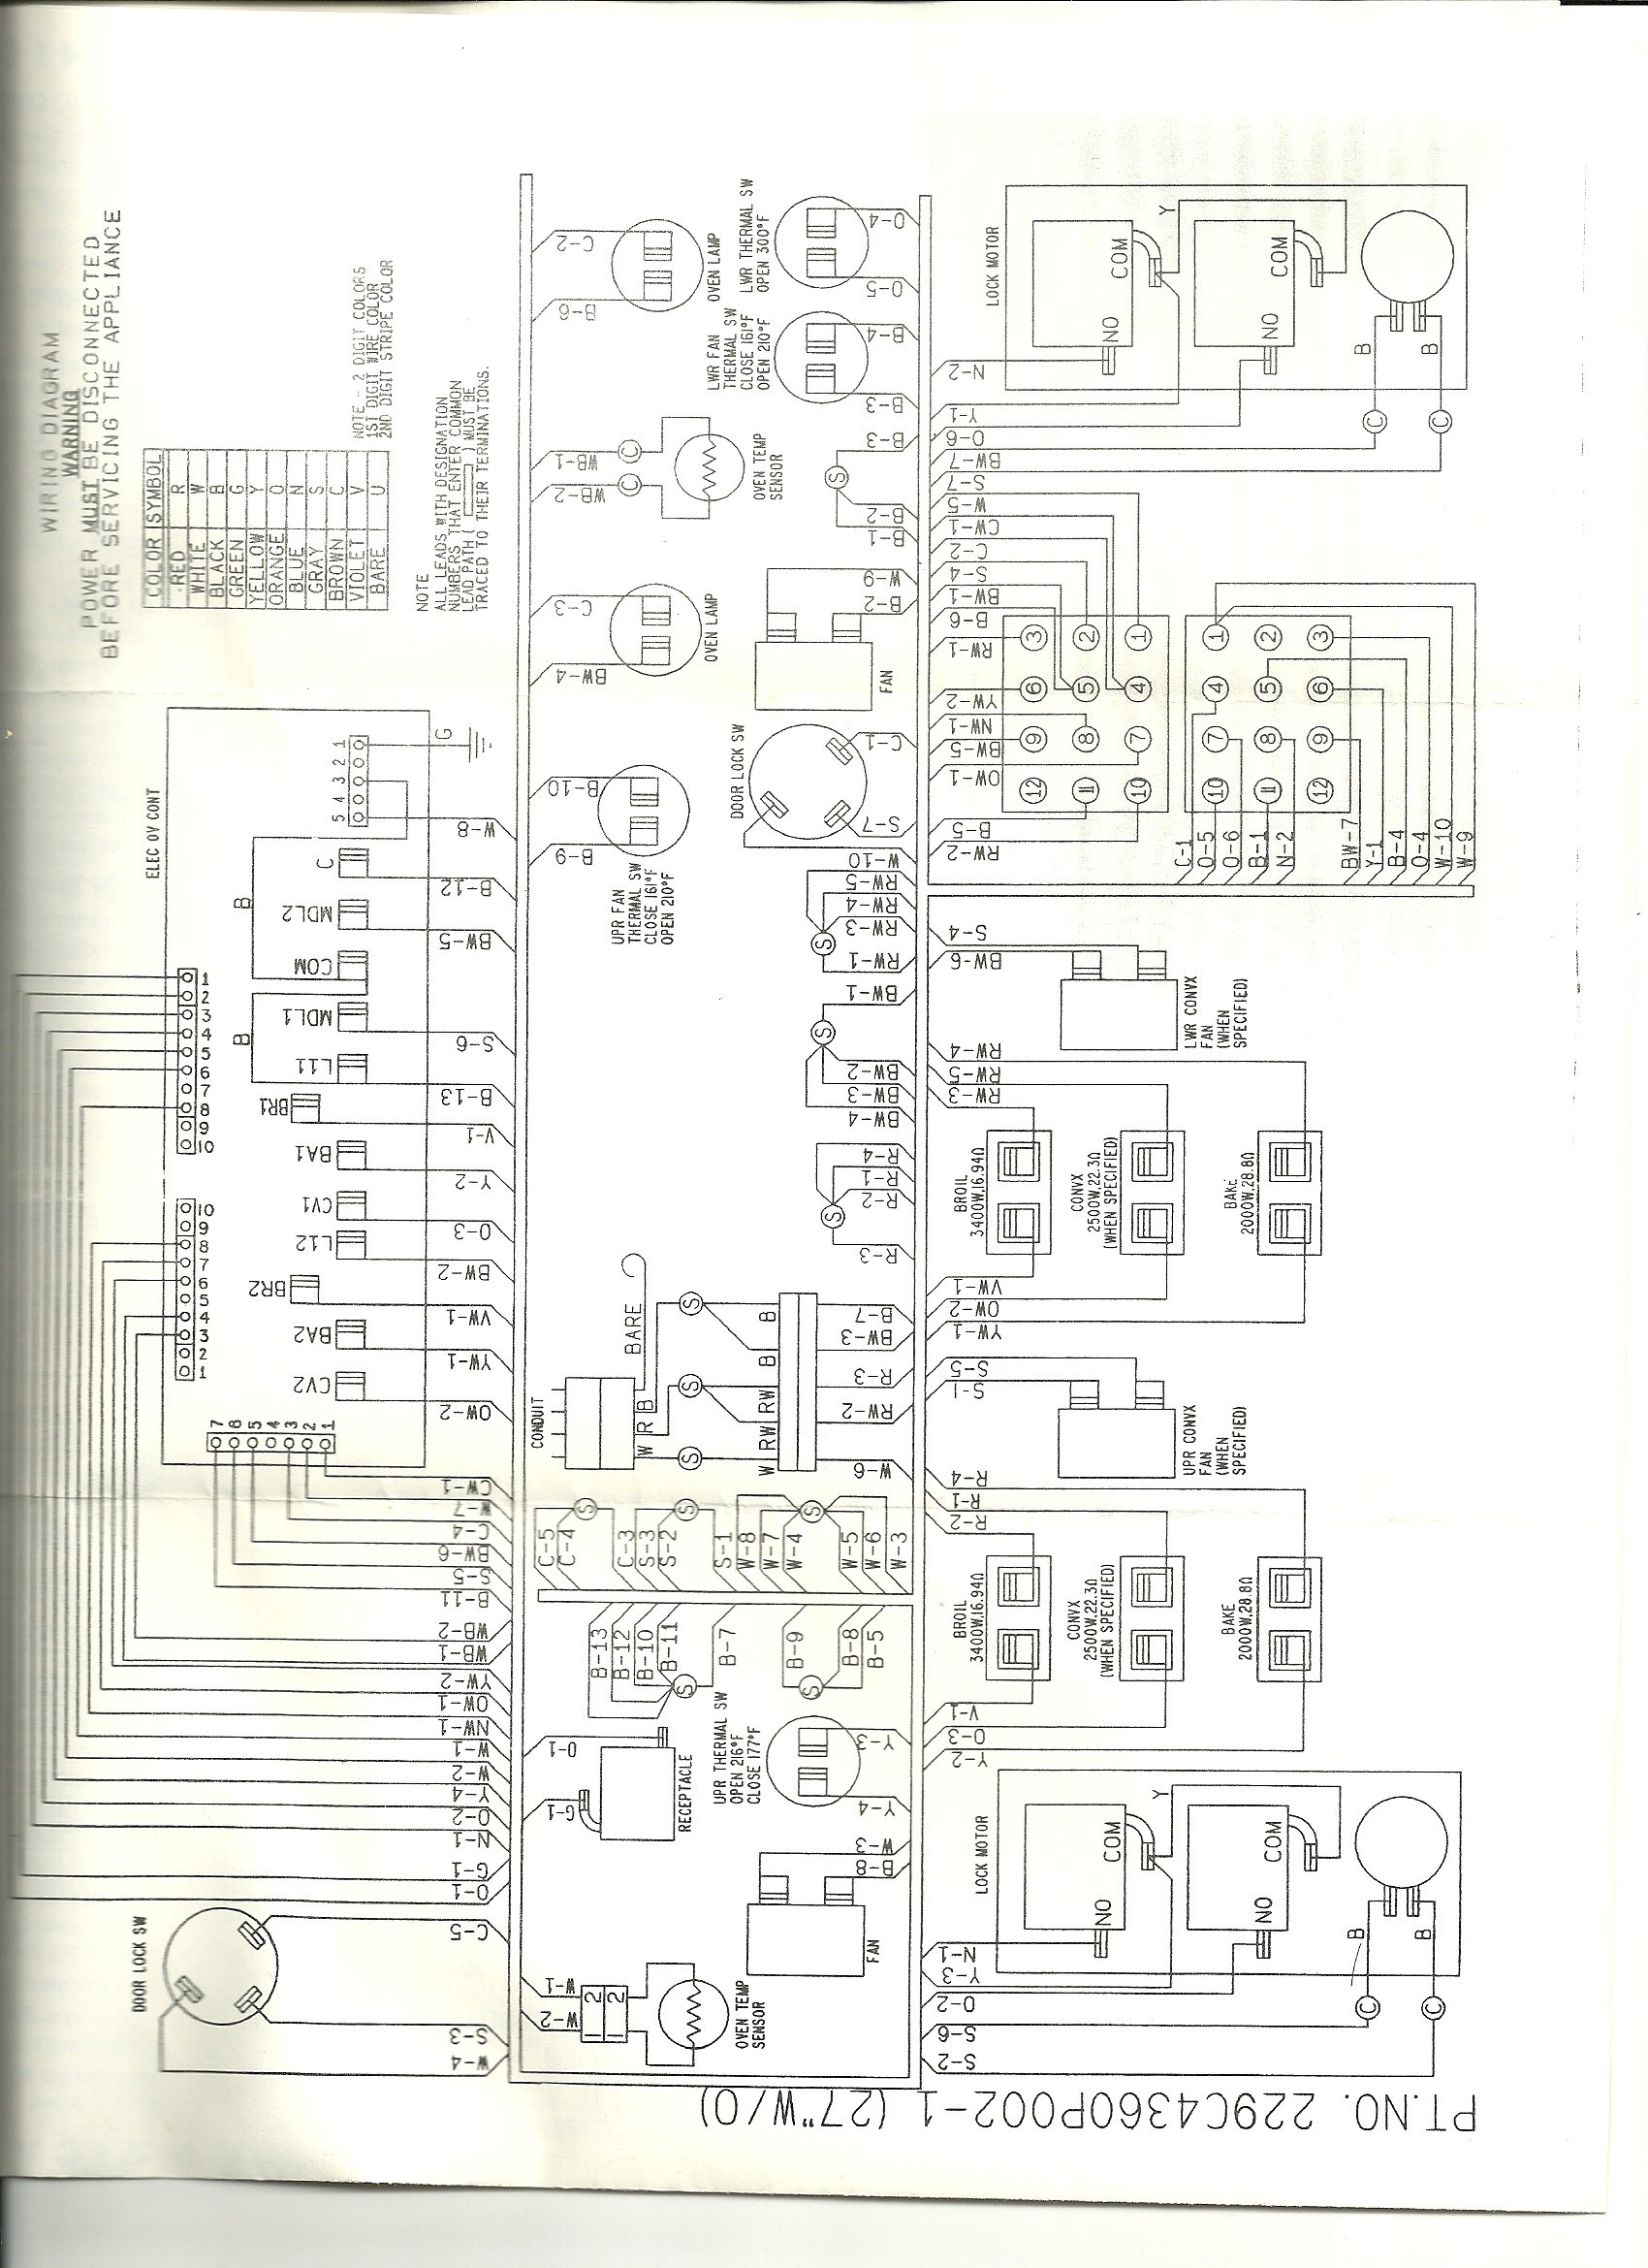 ge oven schematic diagram wiring diagram stove wiring 4 wire to 3 wire 220v electric stove & oven repair manual